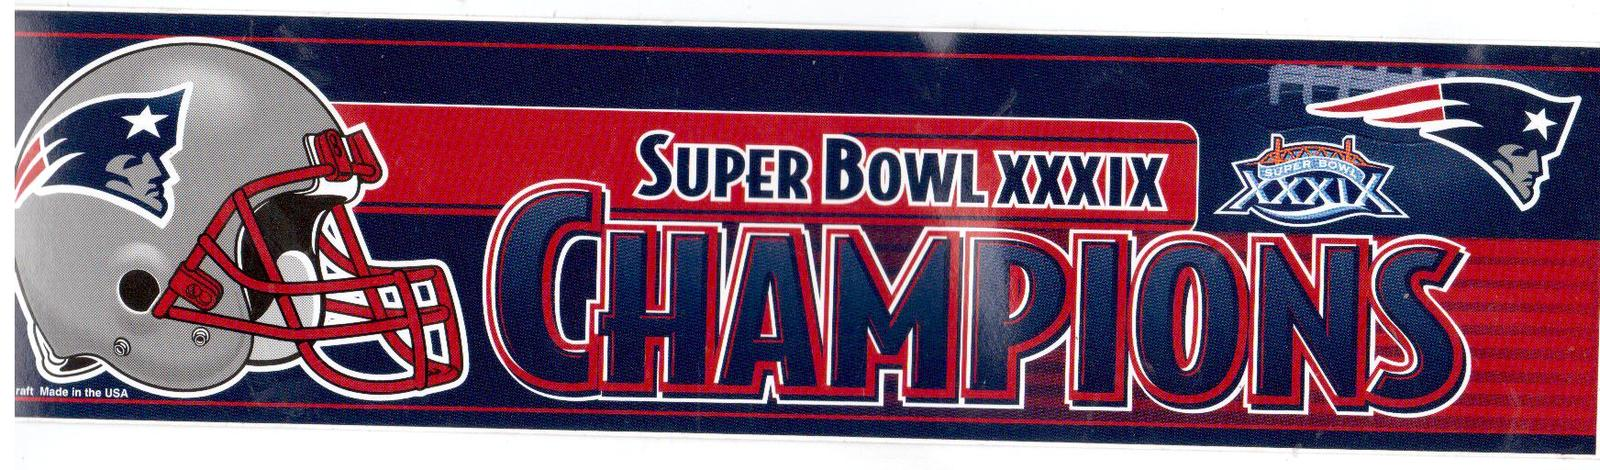 Primary image for New England Patriots SB 39 Champions:Vintage 3X12 Vinyl Foottball Sticker